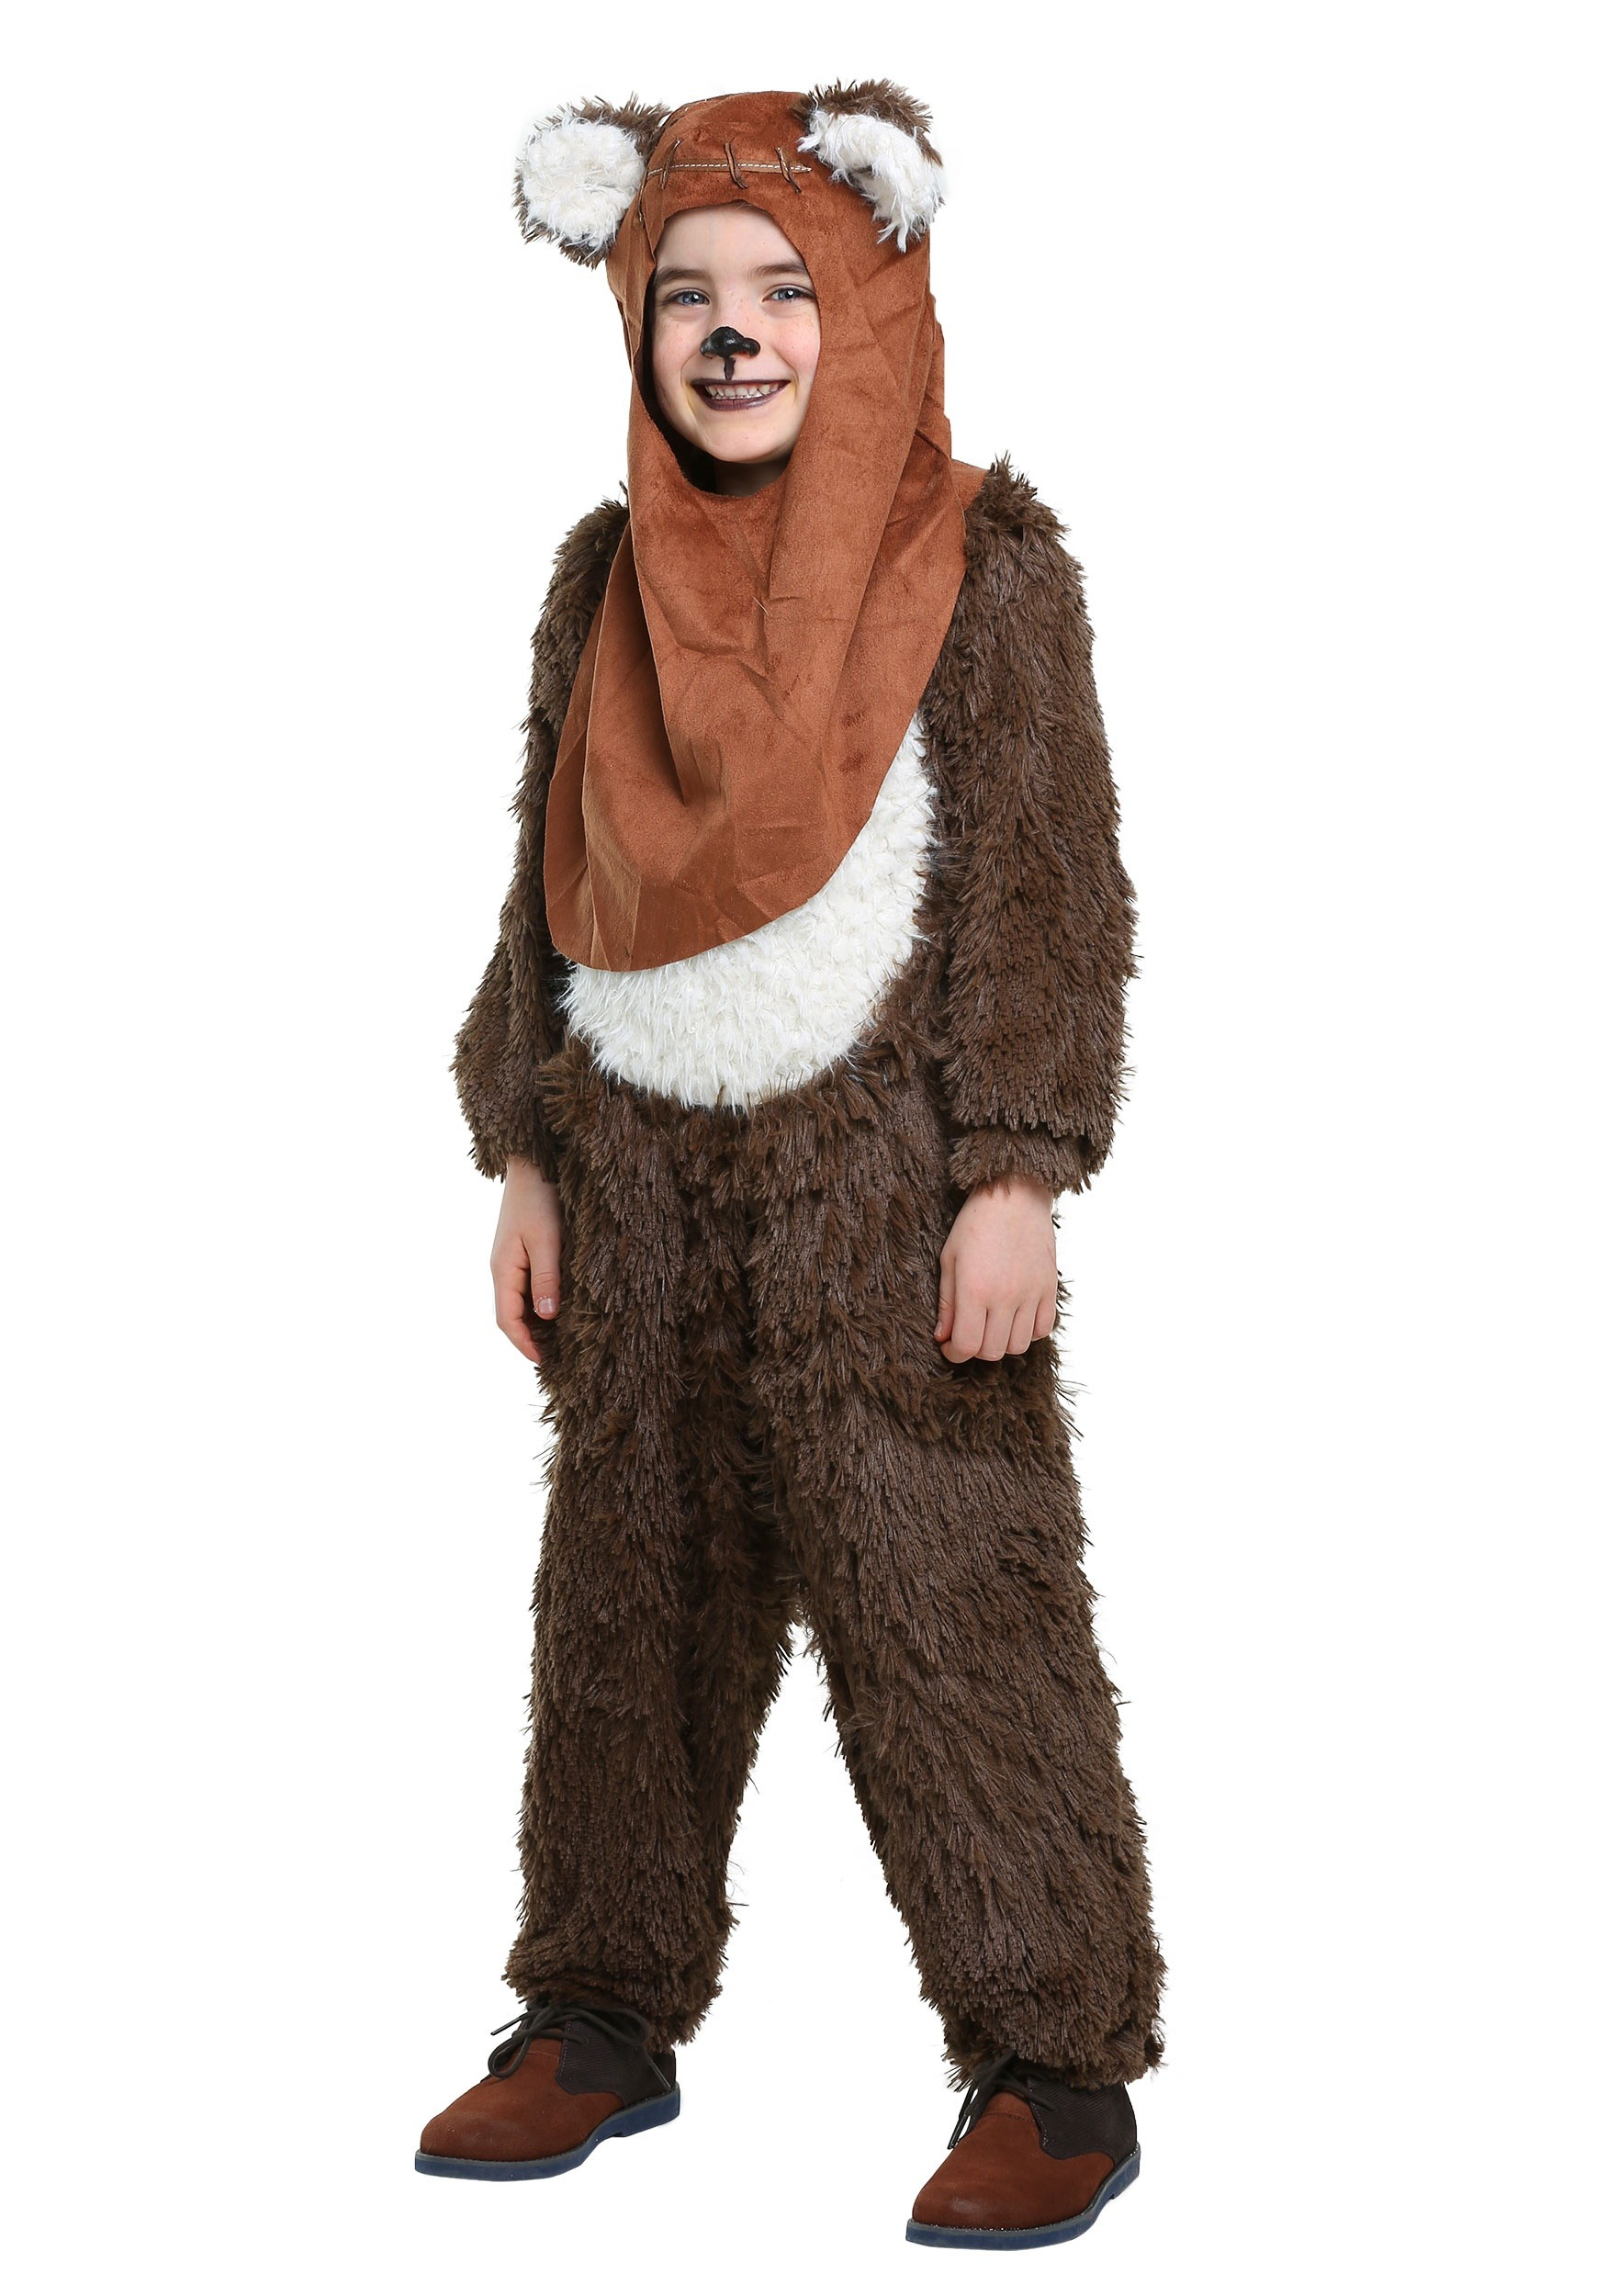 Child Deluxe Wicket/Ewok Costume | Warm Halloween Costume